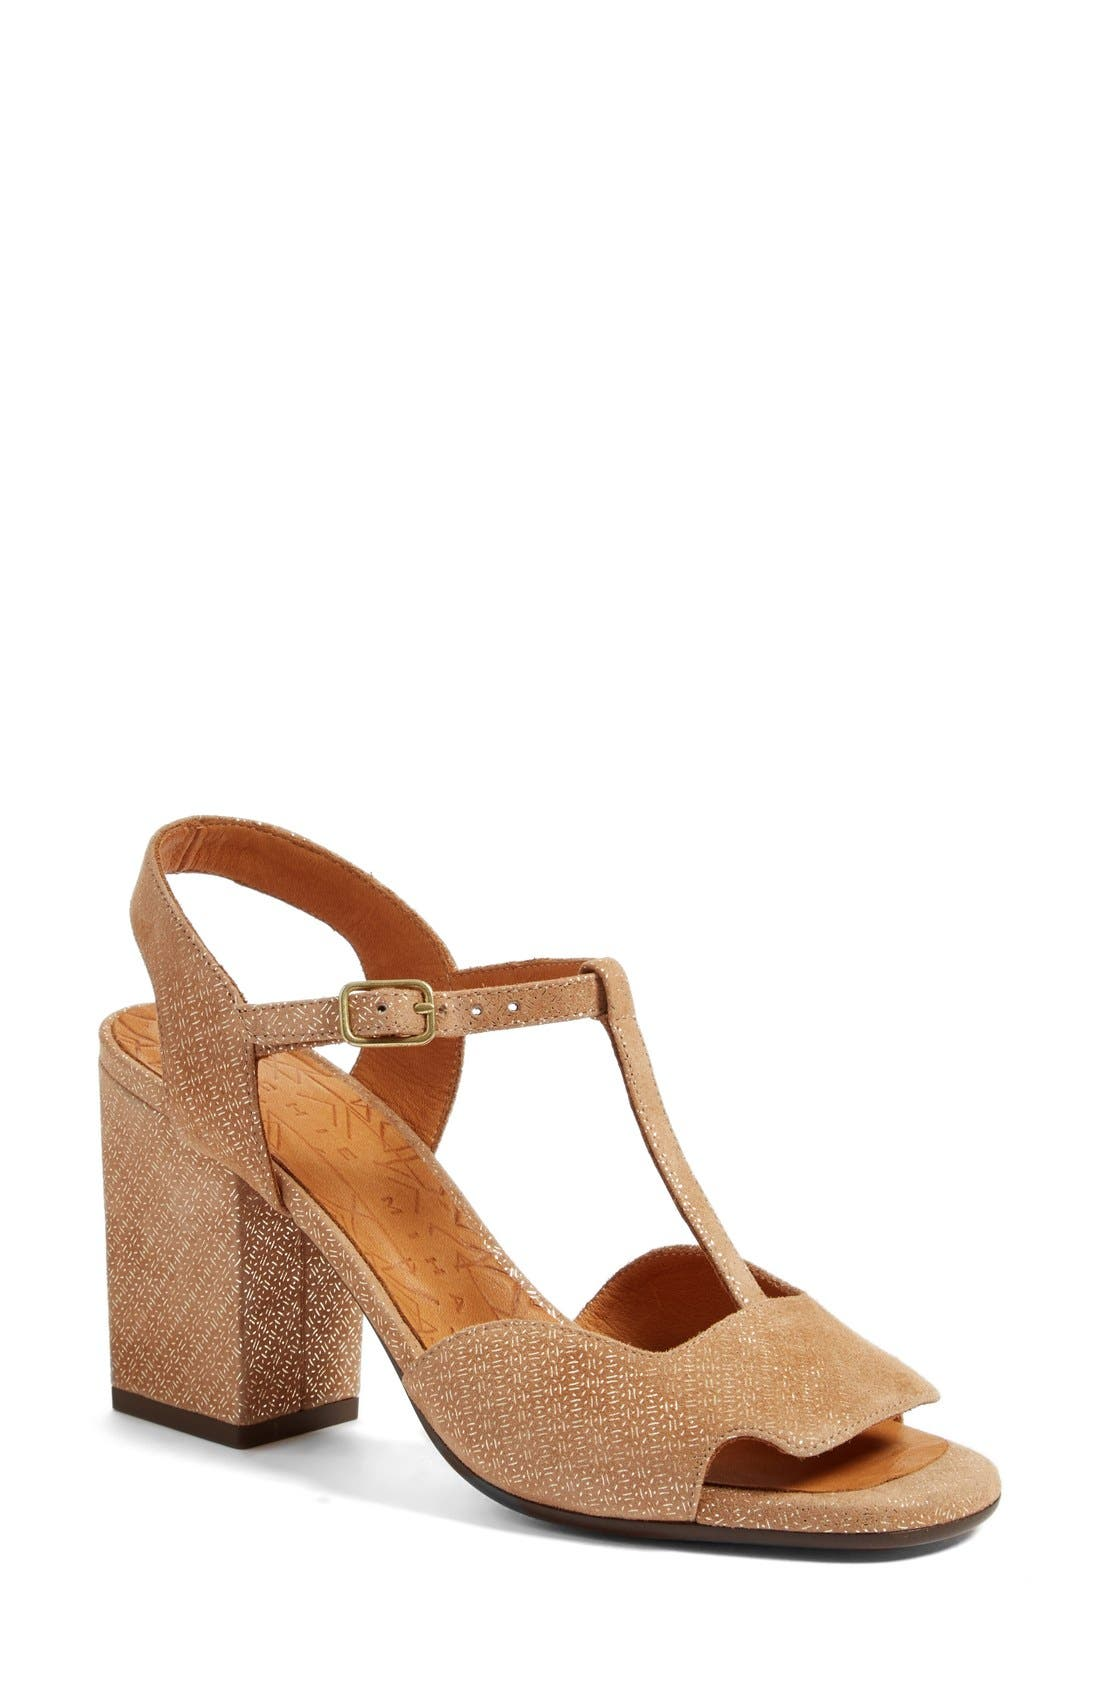 Birthe T-Strap Sandal,                         Main,                         color,